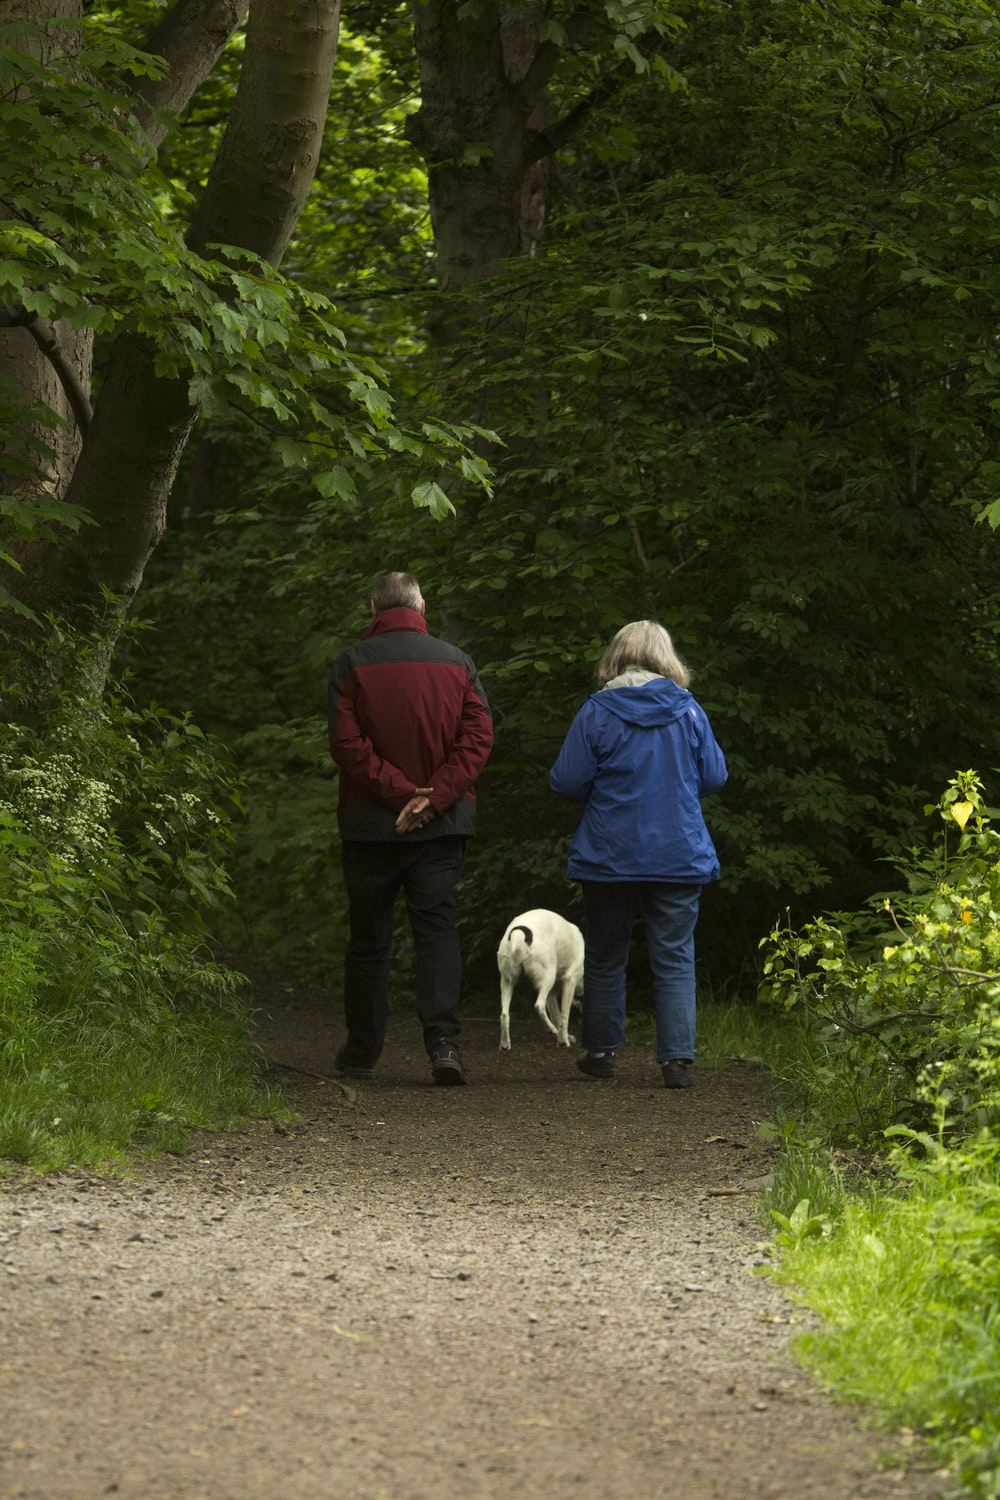 man and woman with white dog walking on dirt road during daytime